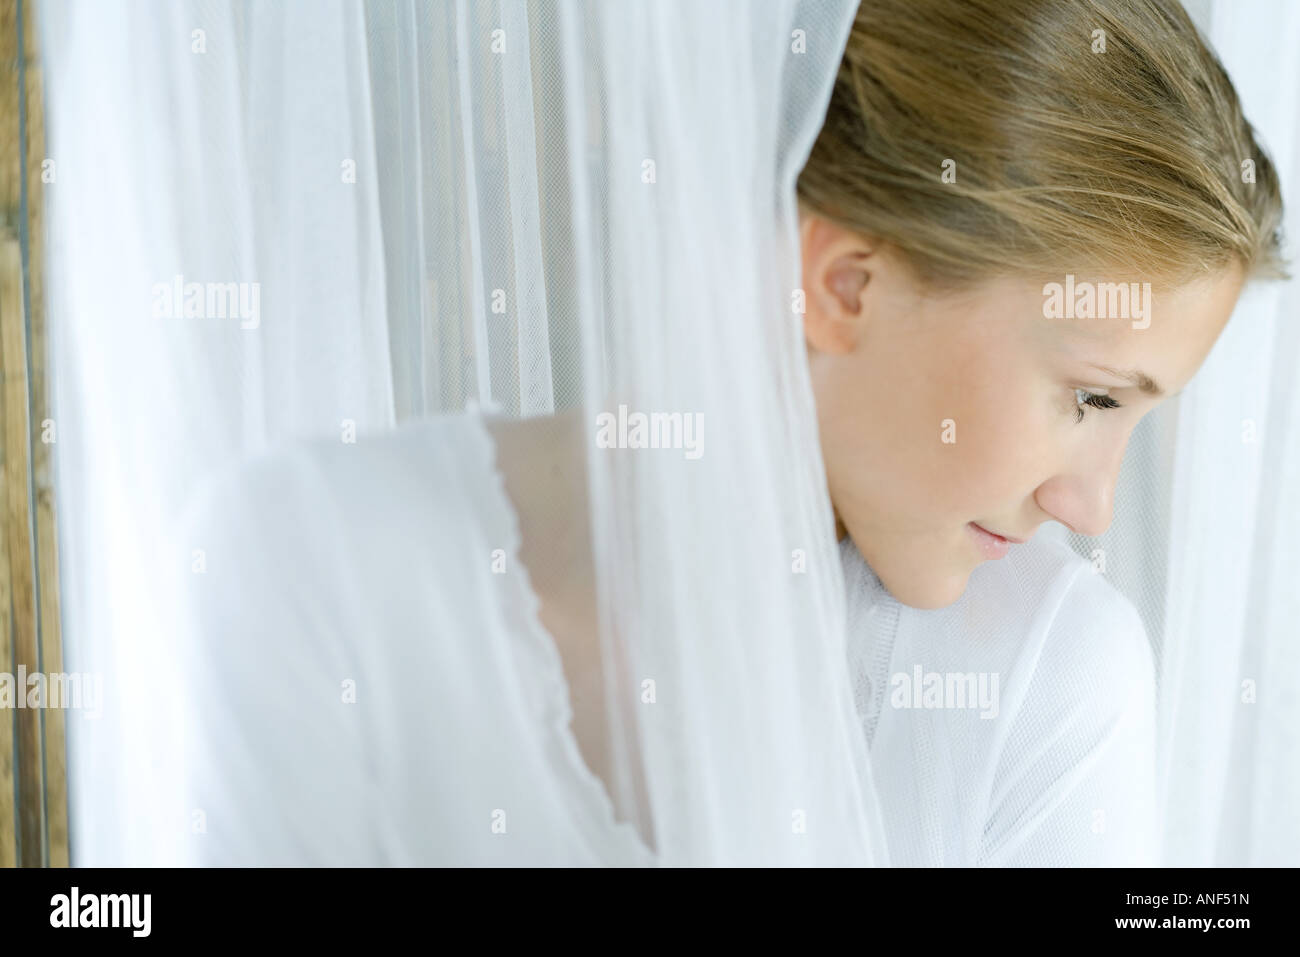 Young woman looking through translucent curtains, head and shoulders - Stock Image